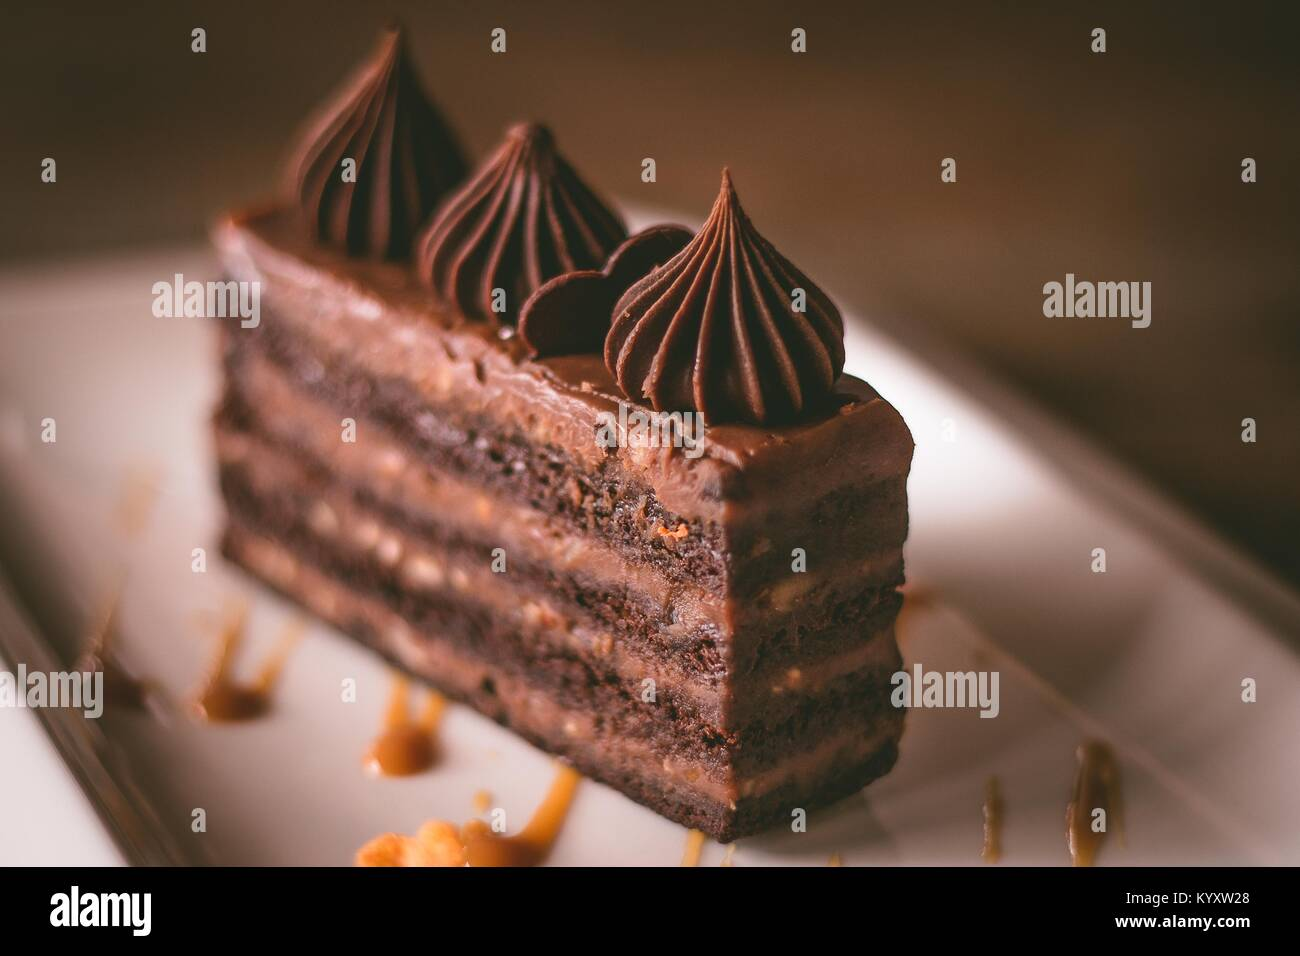 Closeup of a chocolate cake on a white plate on natural light - Stock Image